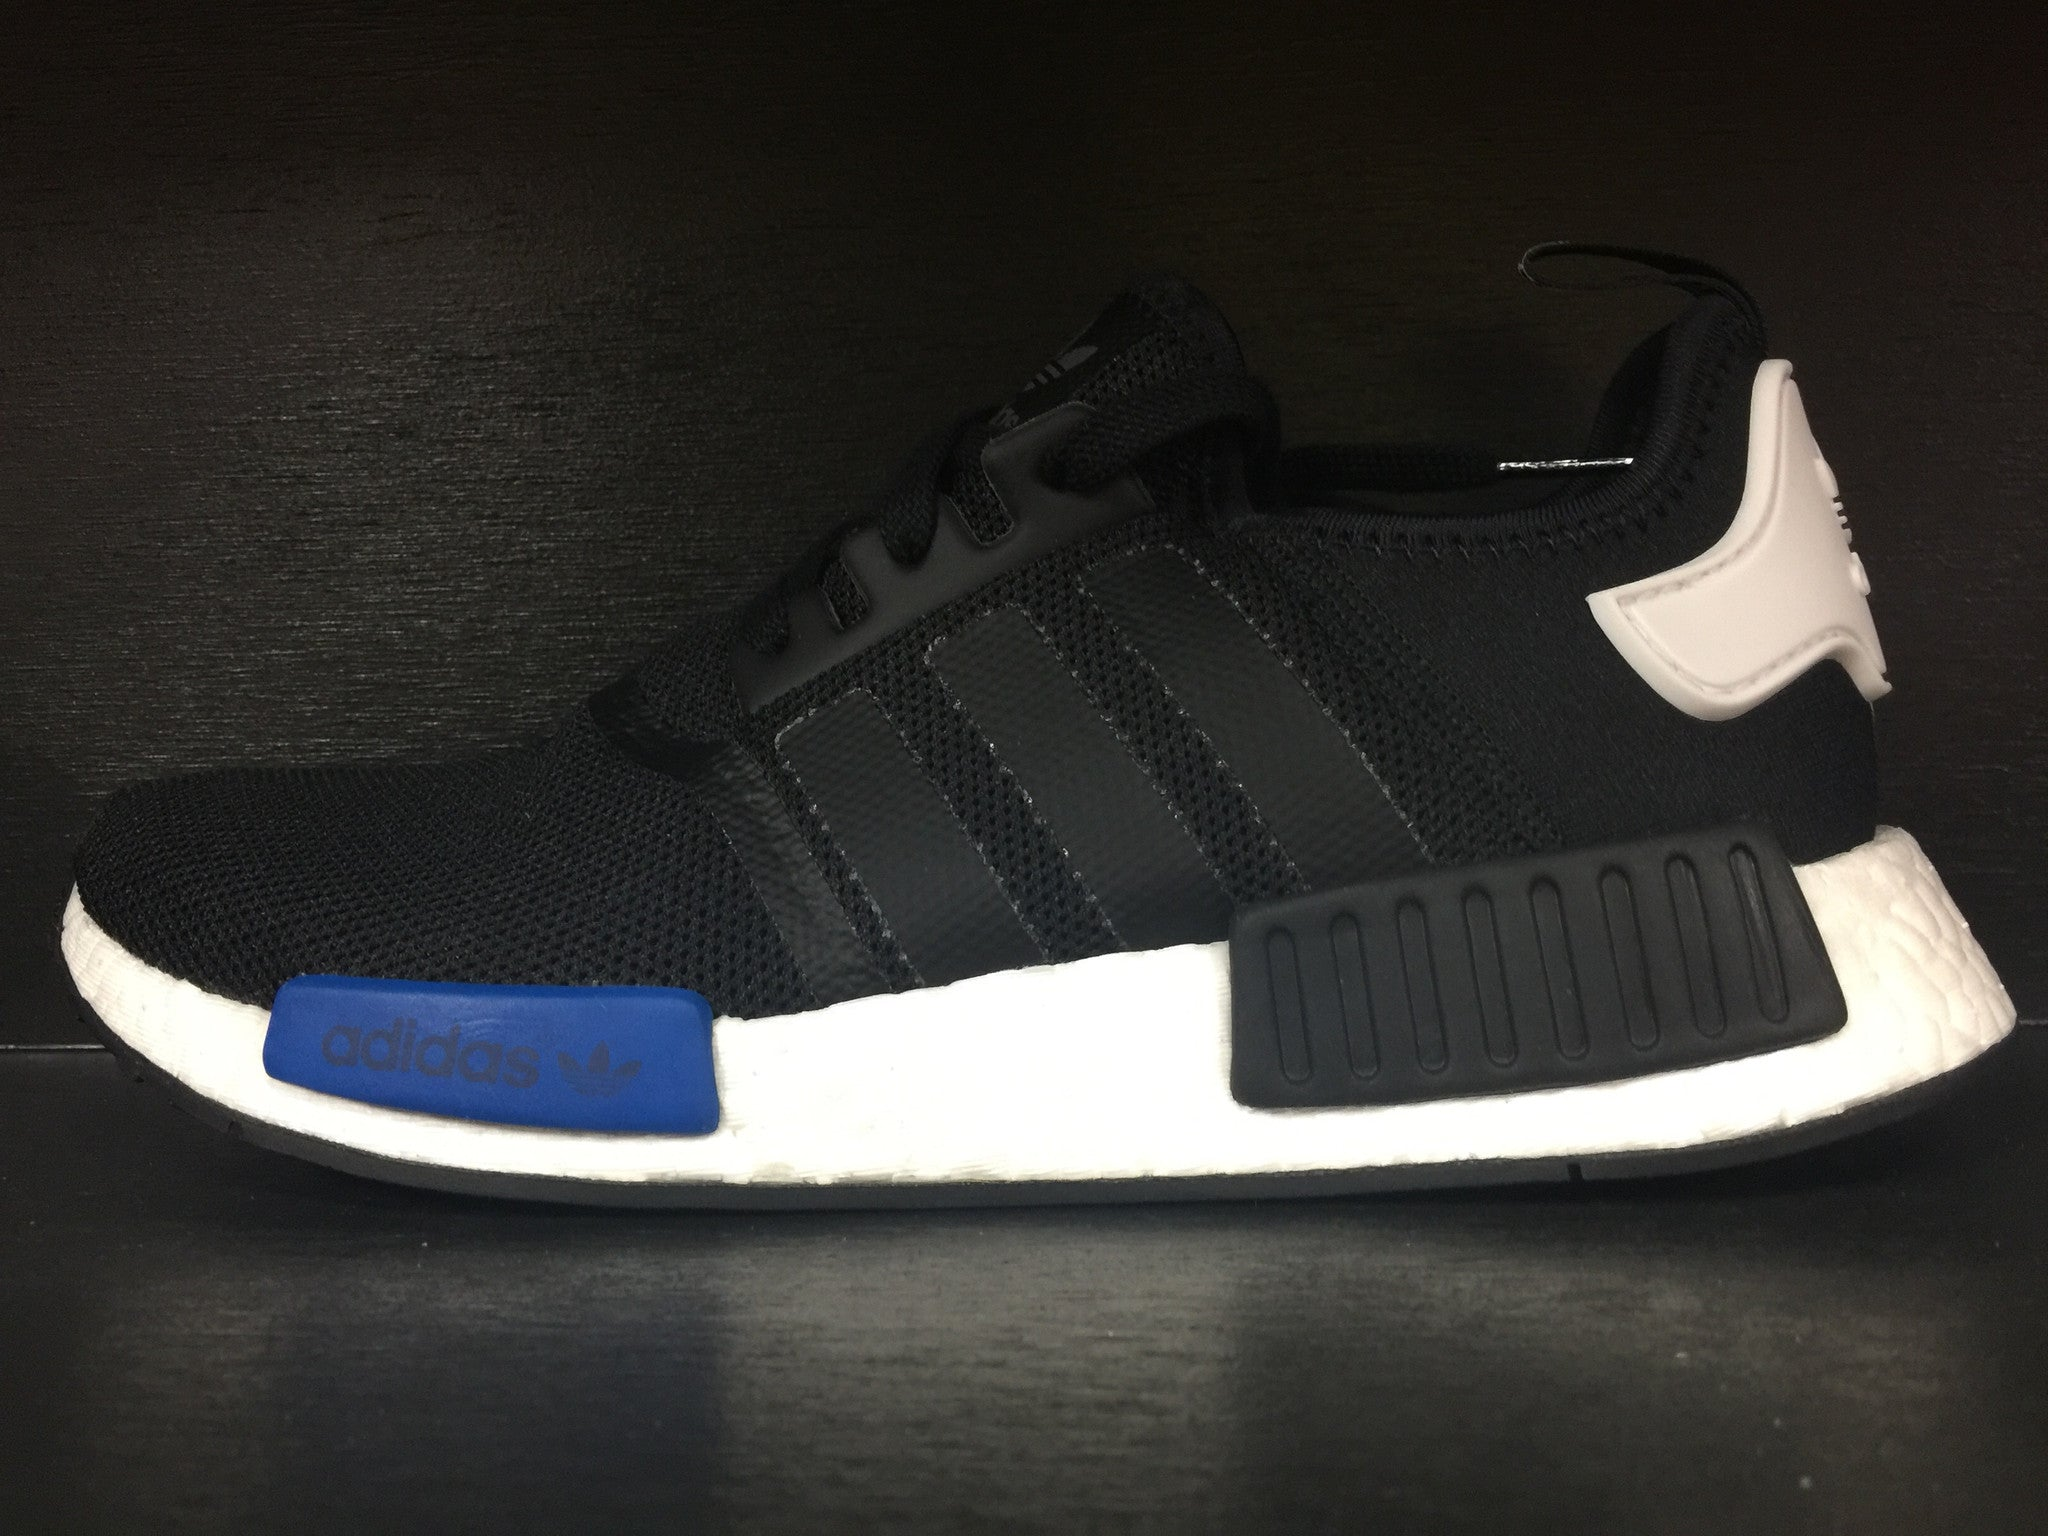 Adidas NMD Runner 'Black'